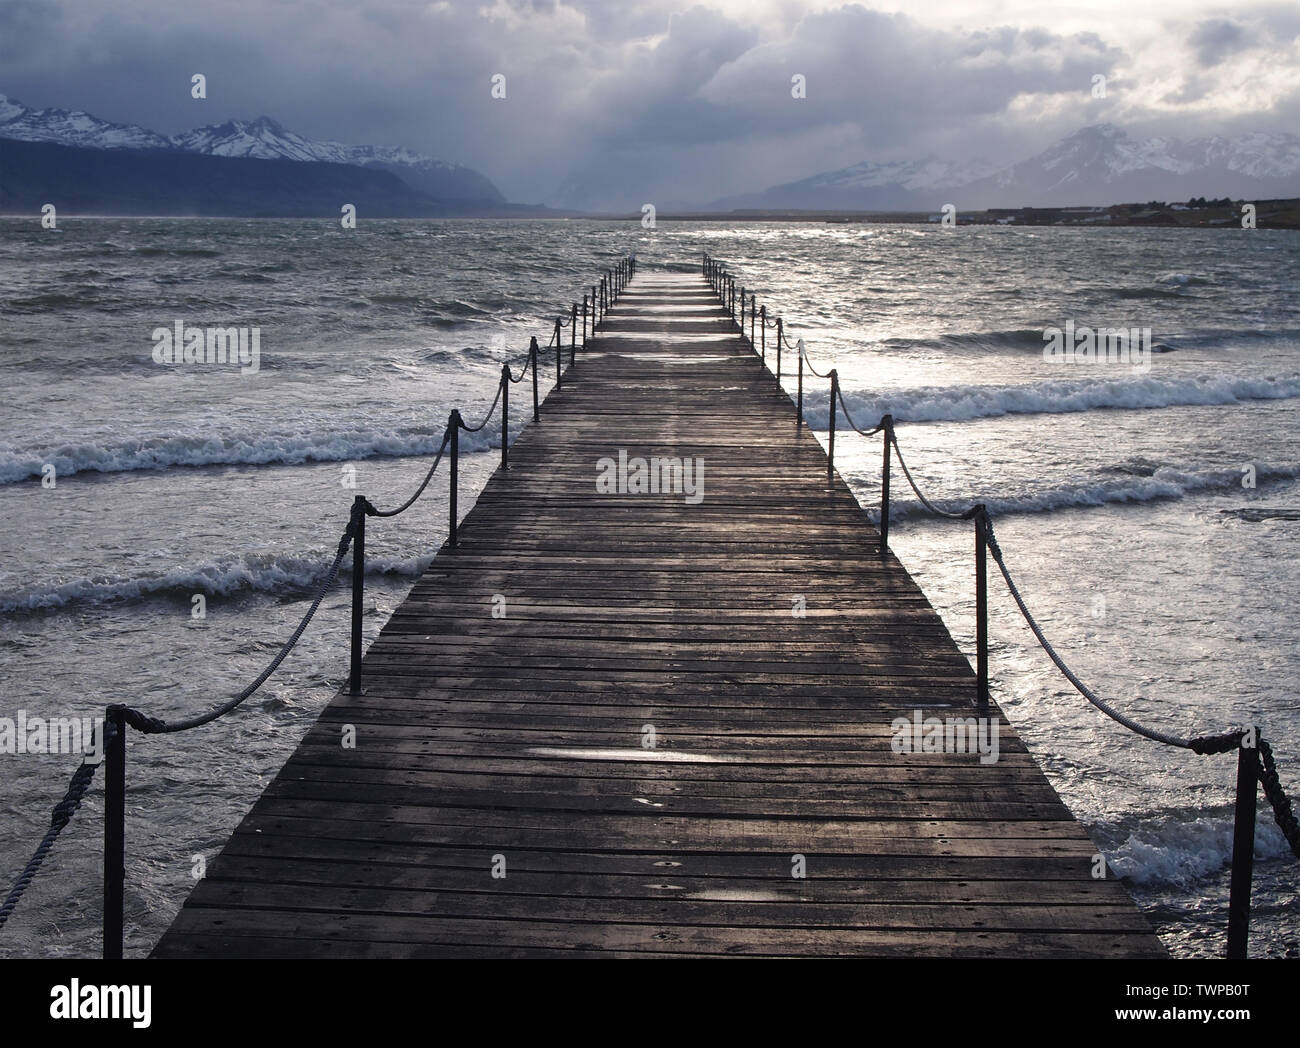 Wooden pier in Puerto Bories, Ultima Esperanza Bay, near the city of Puerto Natales in Southern Chile - Stock Image